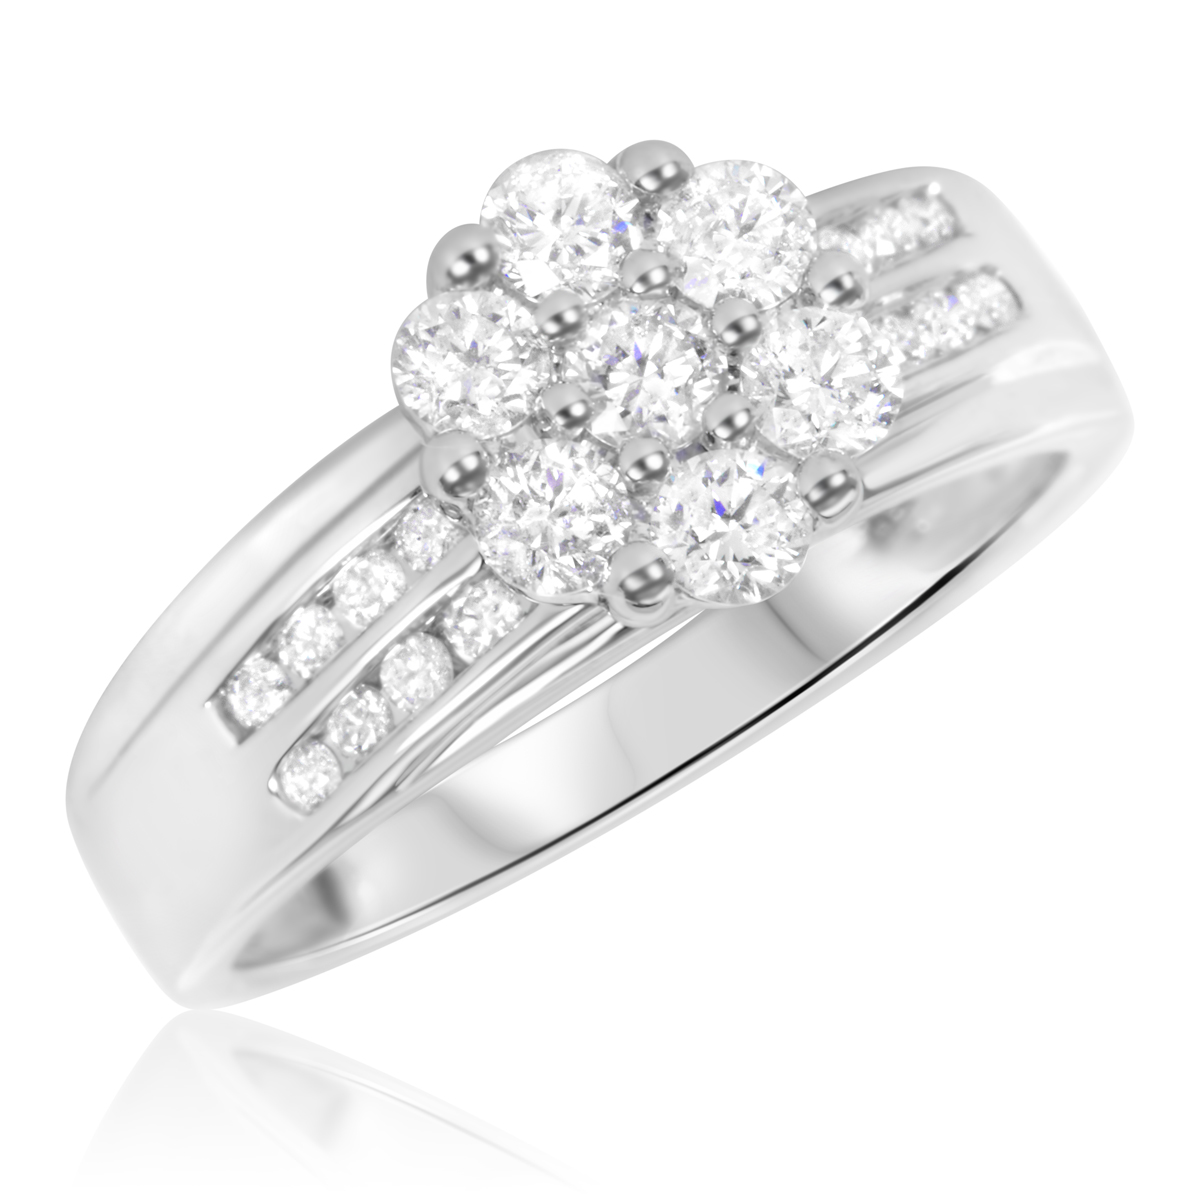 This matching 1 58 Carat T.W. Diamond Trio Matching Wedding Ring Set ...